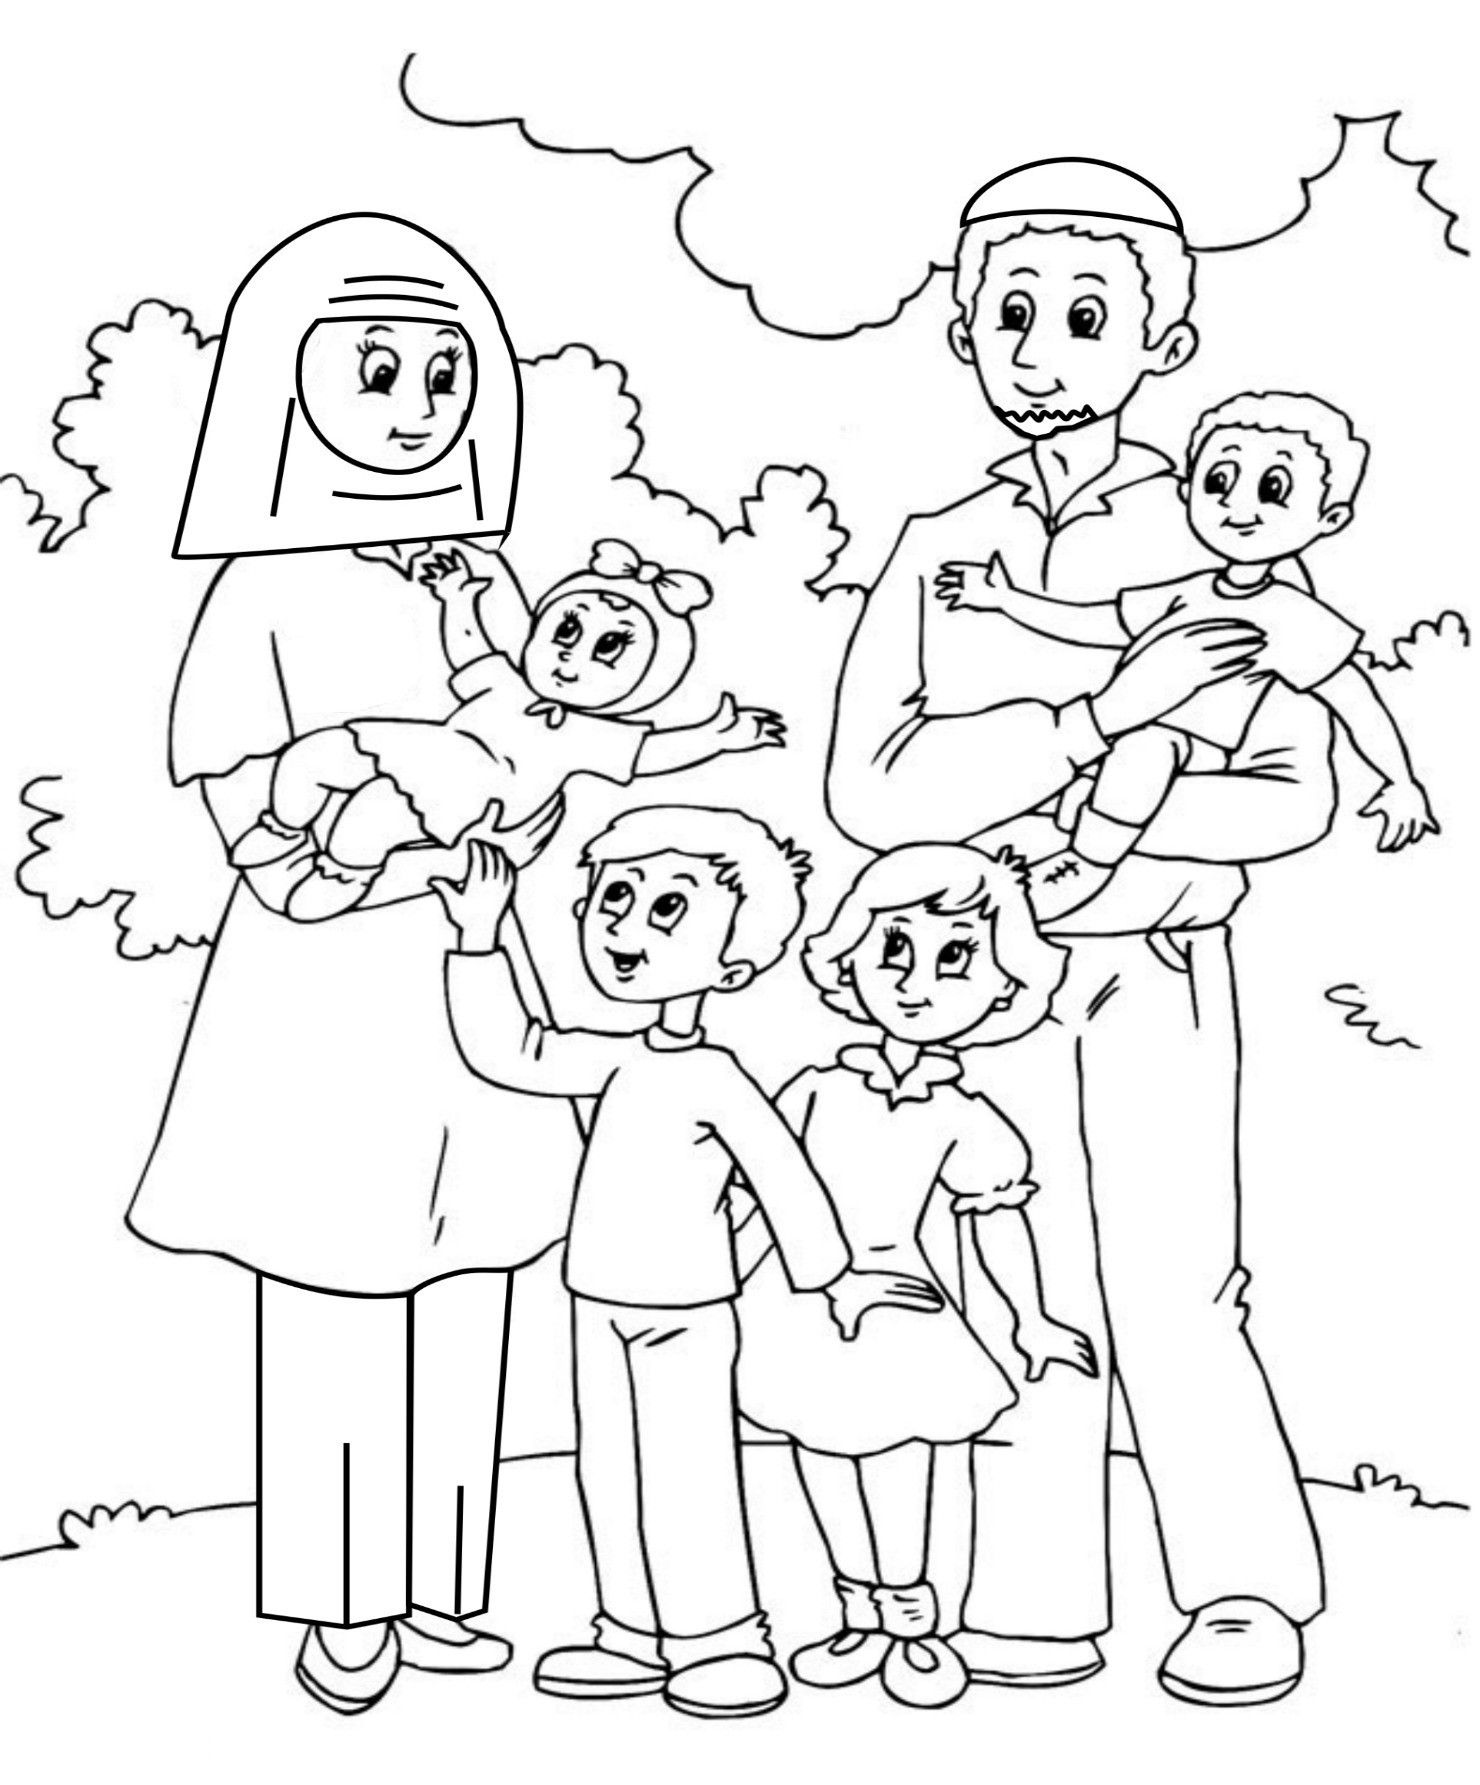 Family And Friends Coloring Pages At Getcolorings